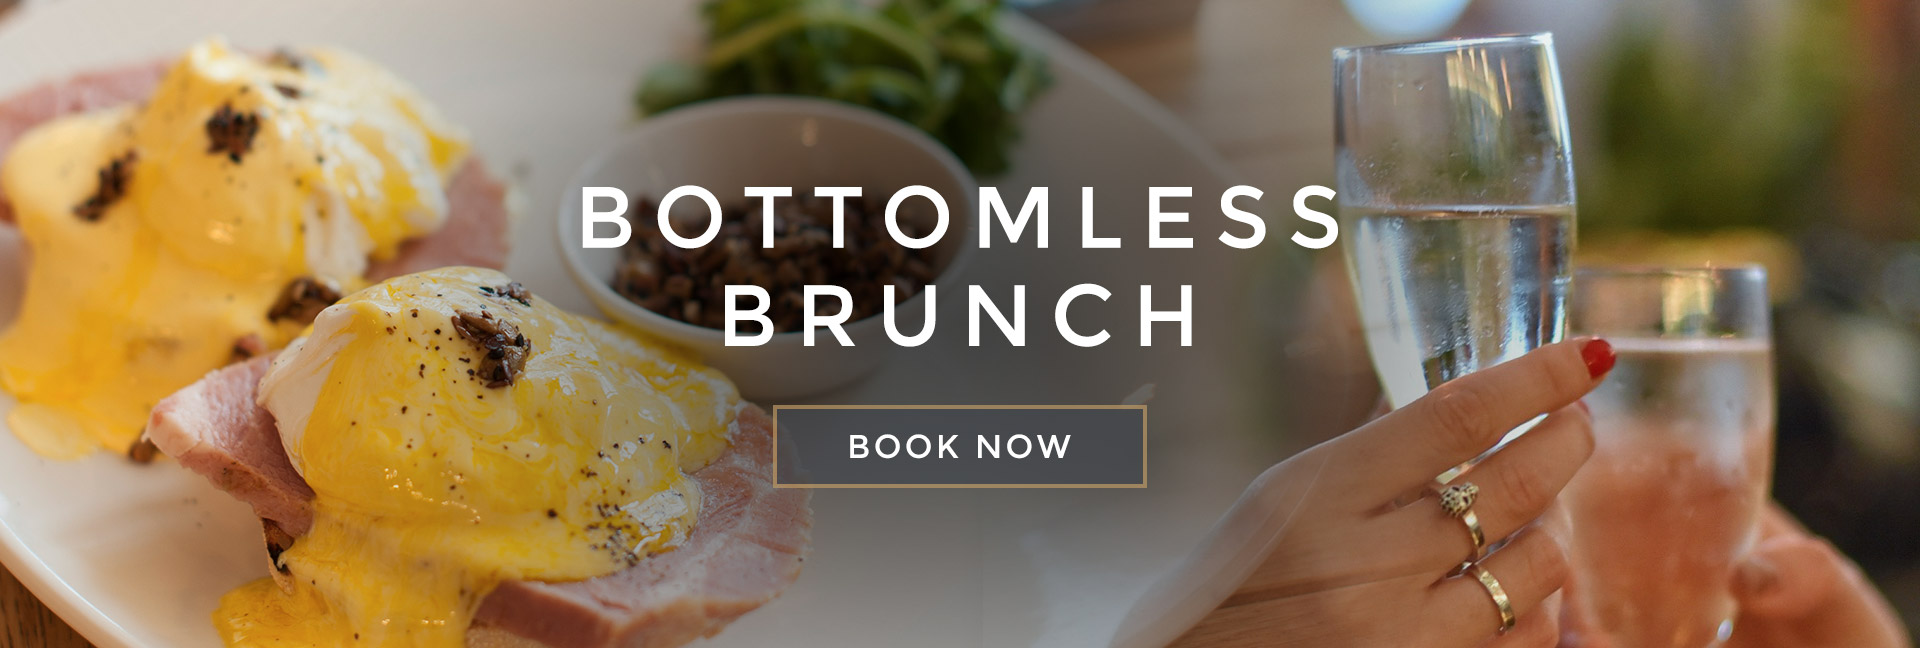 Bottomless Brunch at All Bar One Picton Place - Book now